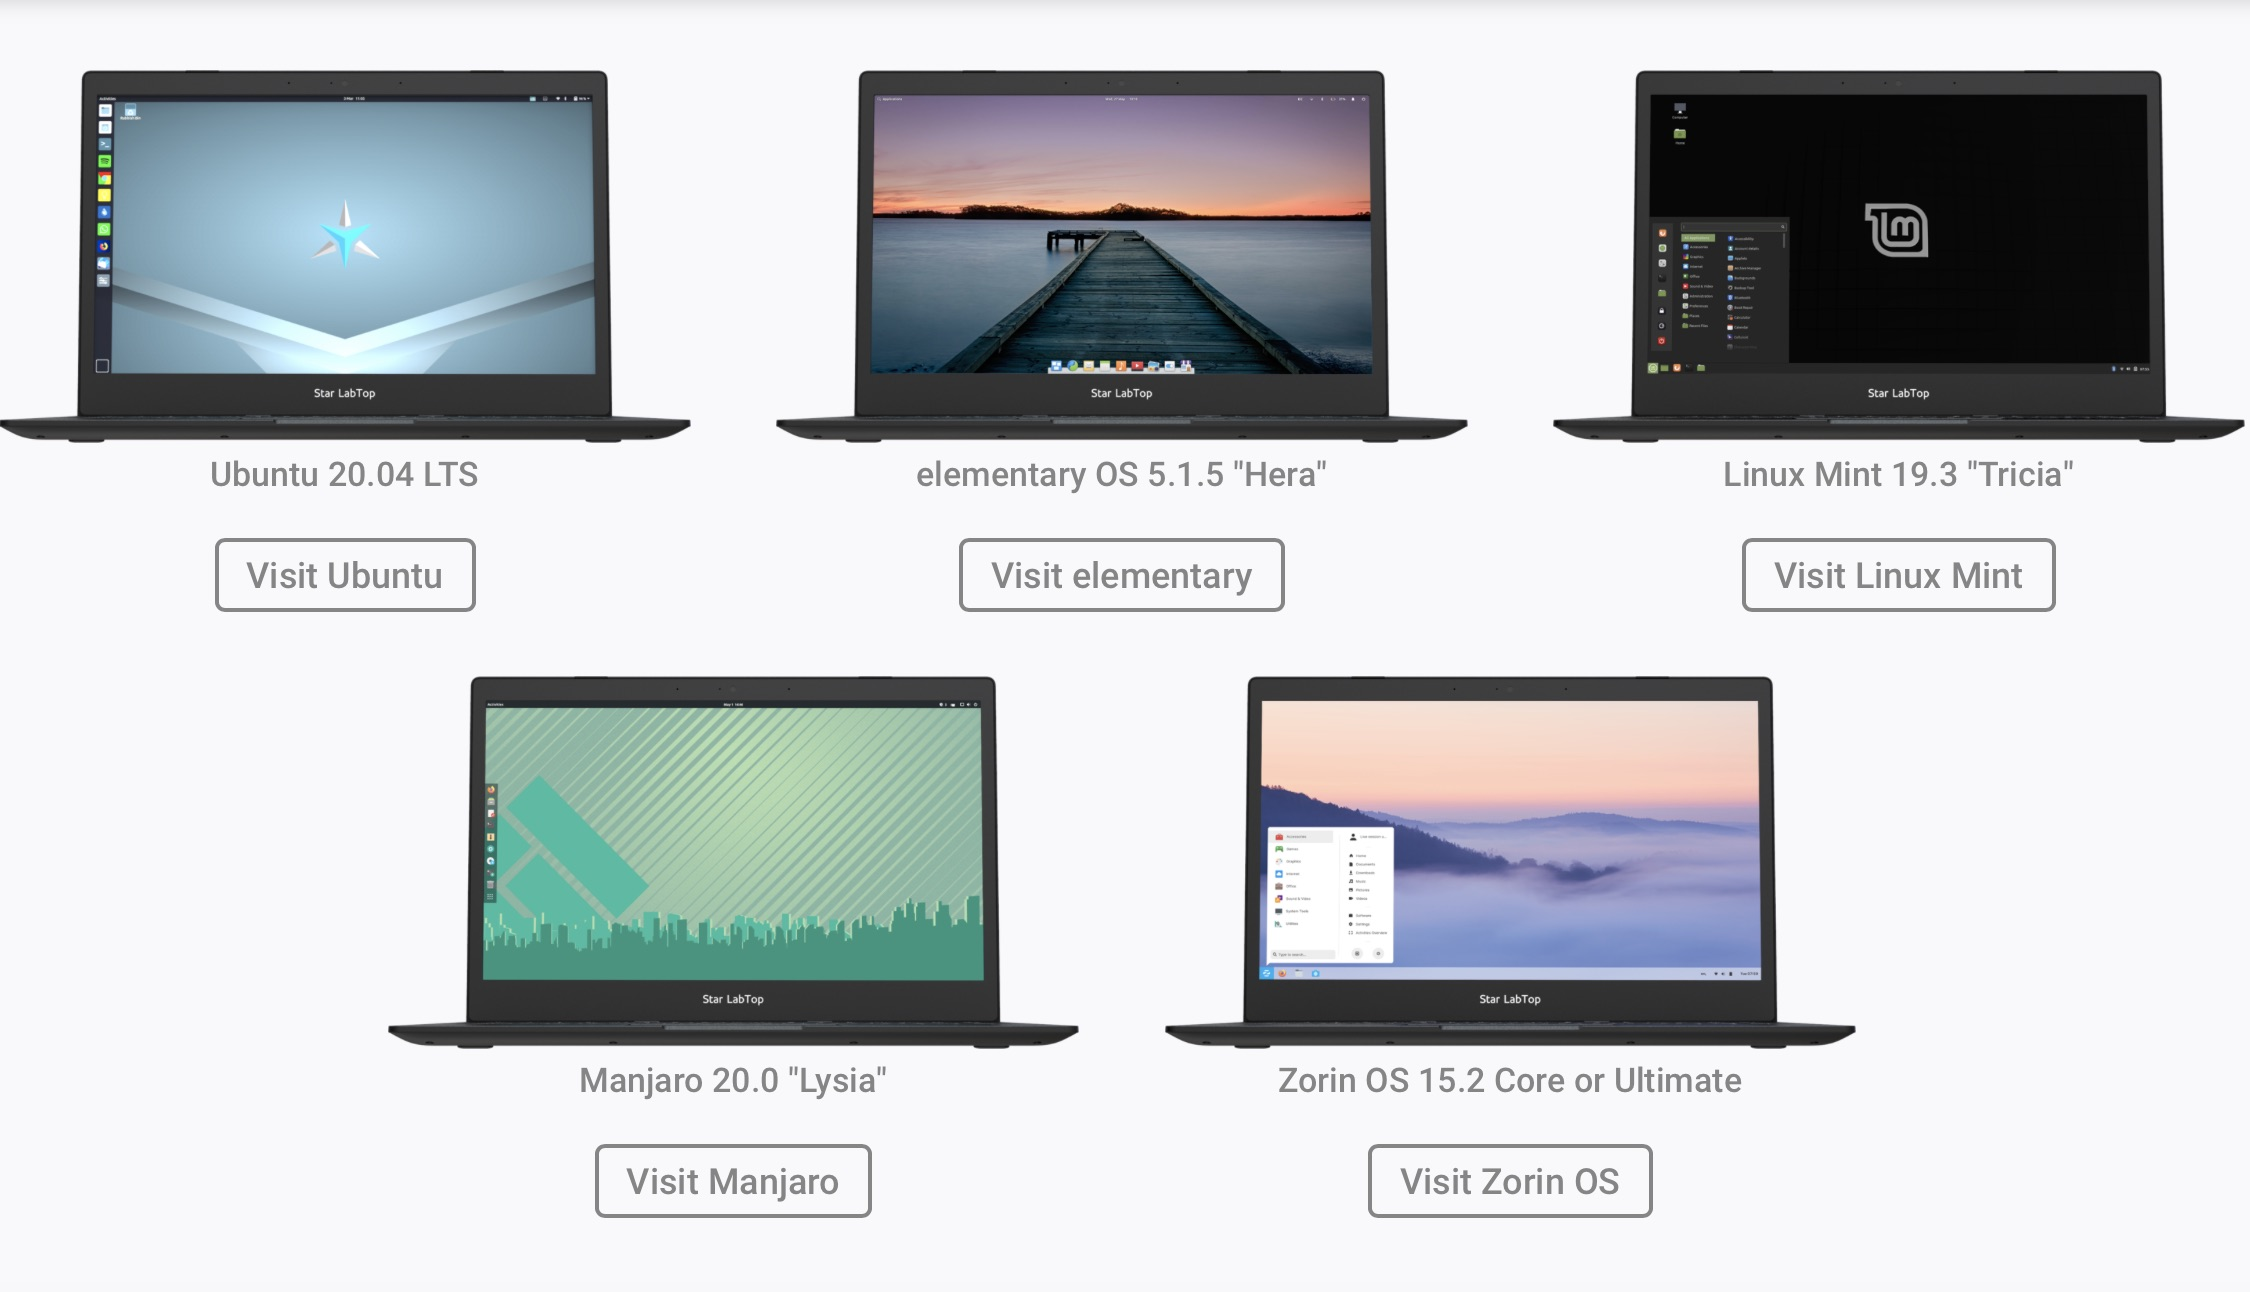 Star Labs Now Offers Elementary Os As An Os Choice For Its Linux Laptops 9to5linux